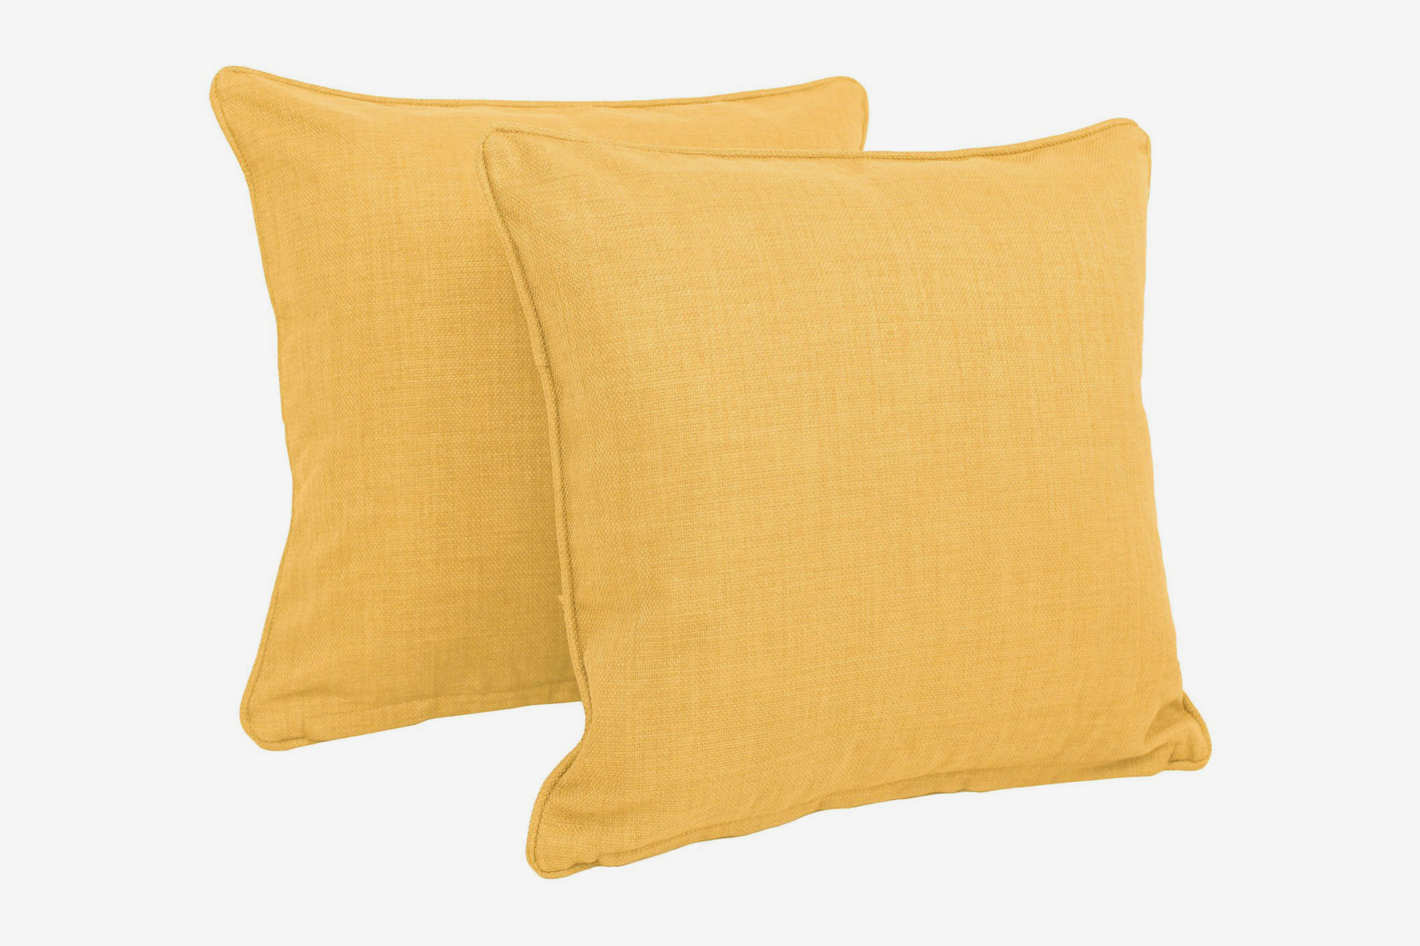 Blazing Needles Solid Twill Outdoor Throw Pillows — Set of 2